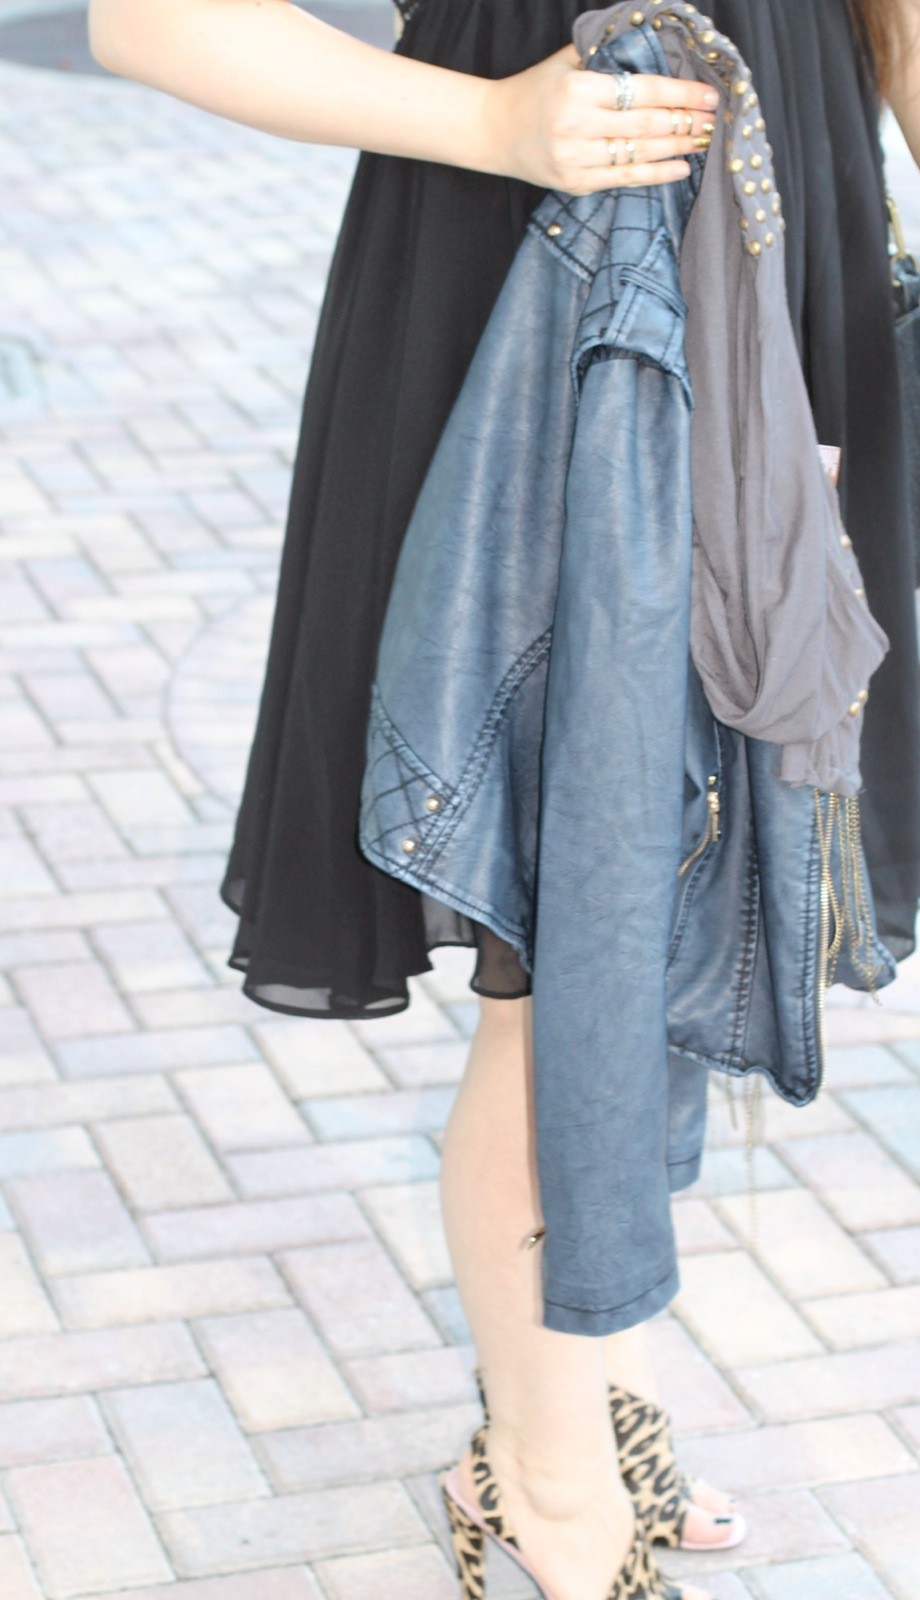 T.J.Maxx maxxinista lexi little black swing dress navy leather quilted jacket studded scarf leopard sandals street style standing _ glitterinc.com